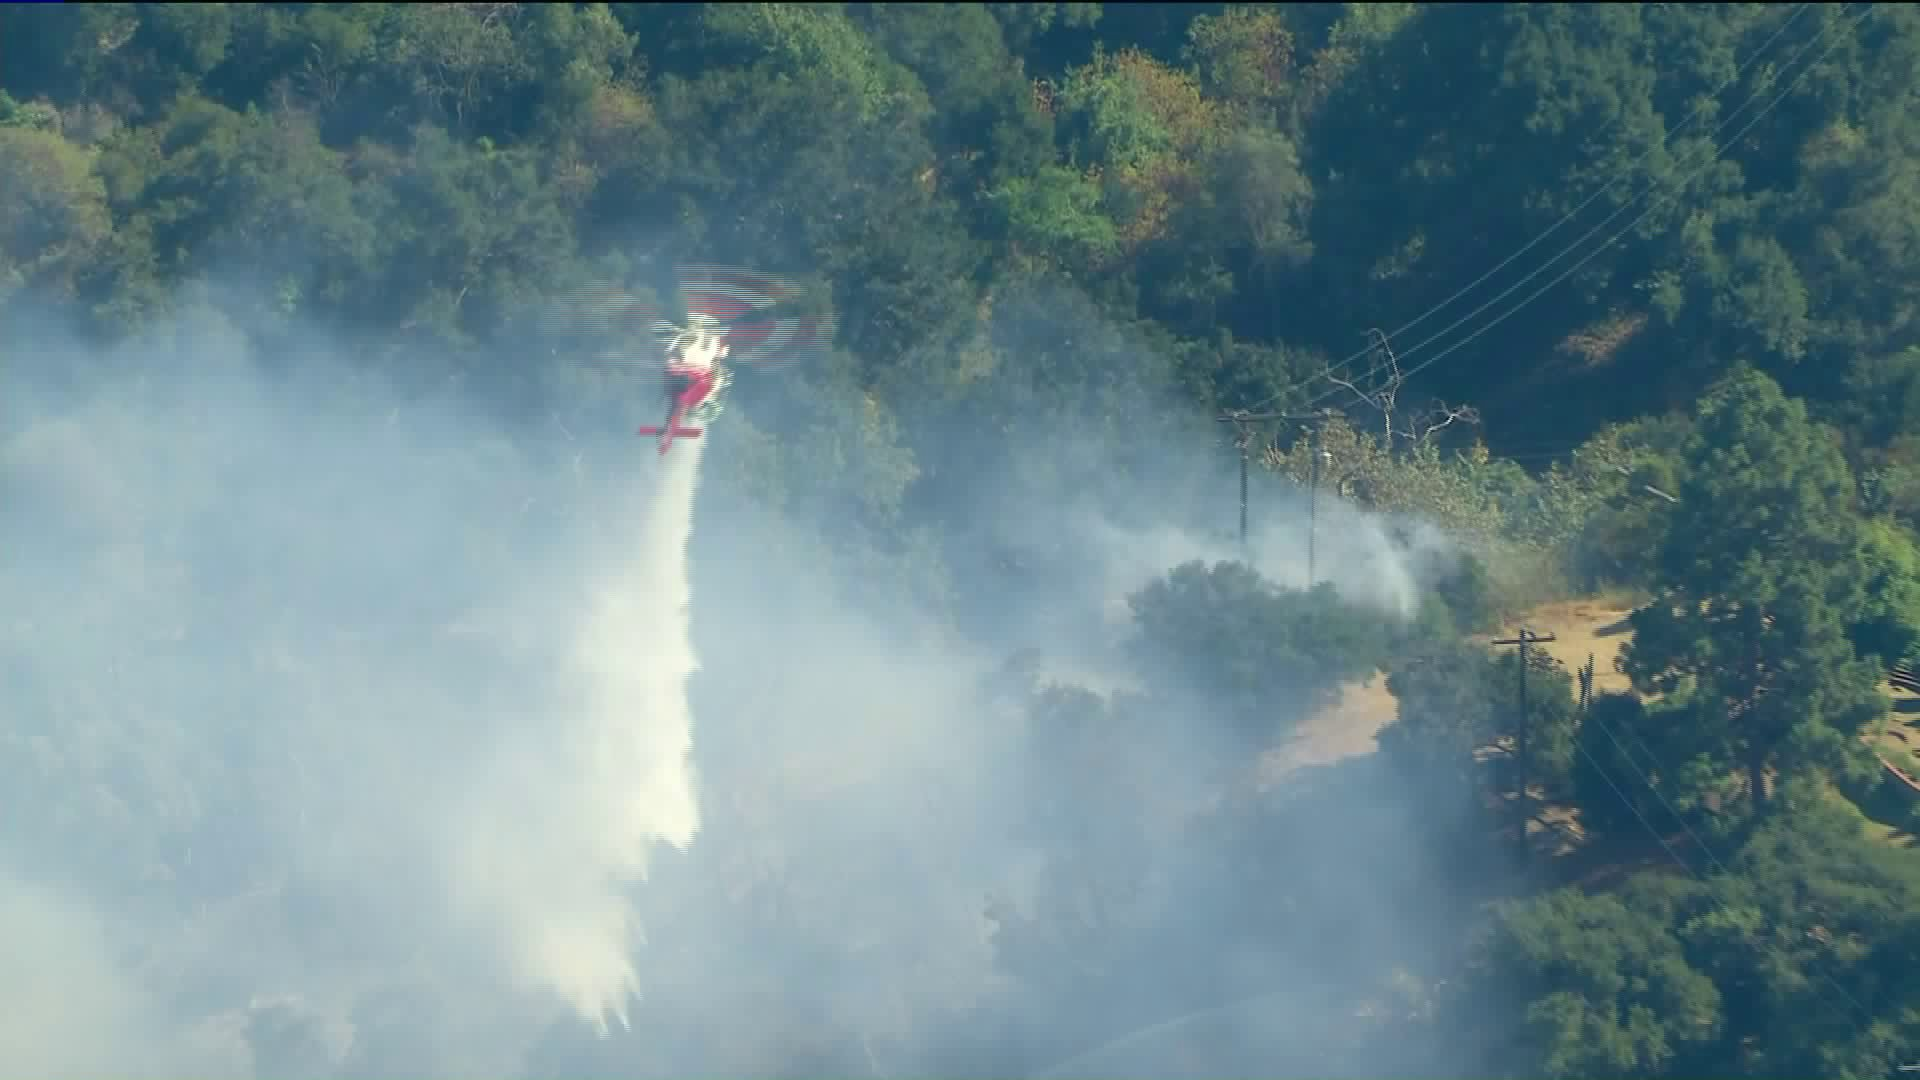 The Grove Fire in Hacienda Heights was burning brush in the area on Aug. 14, 2020. (KTLA)